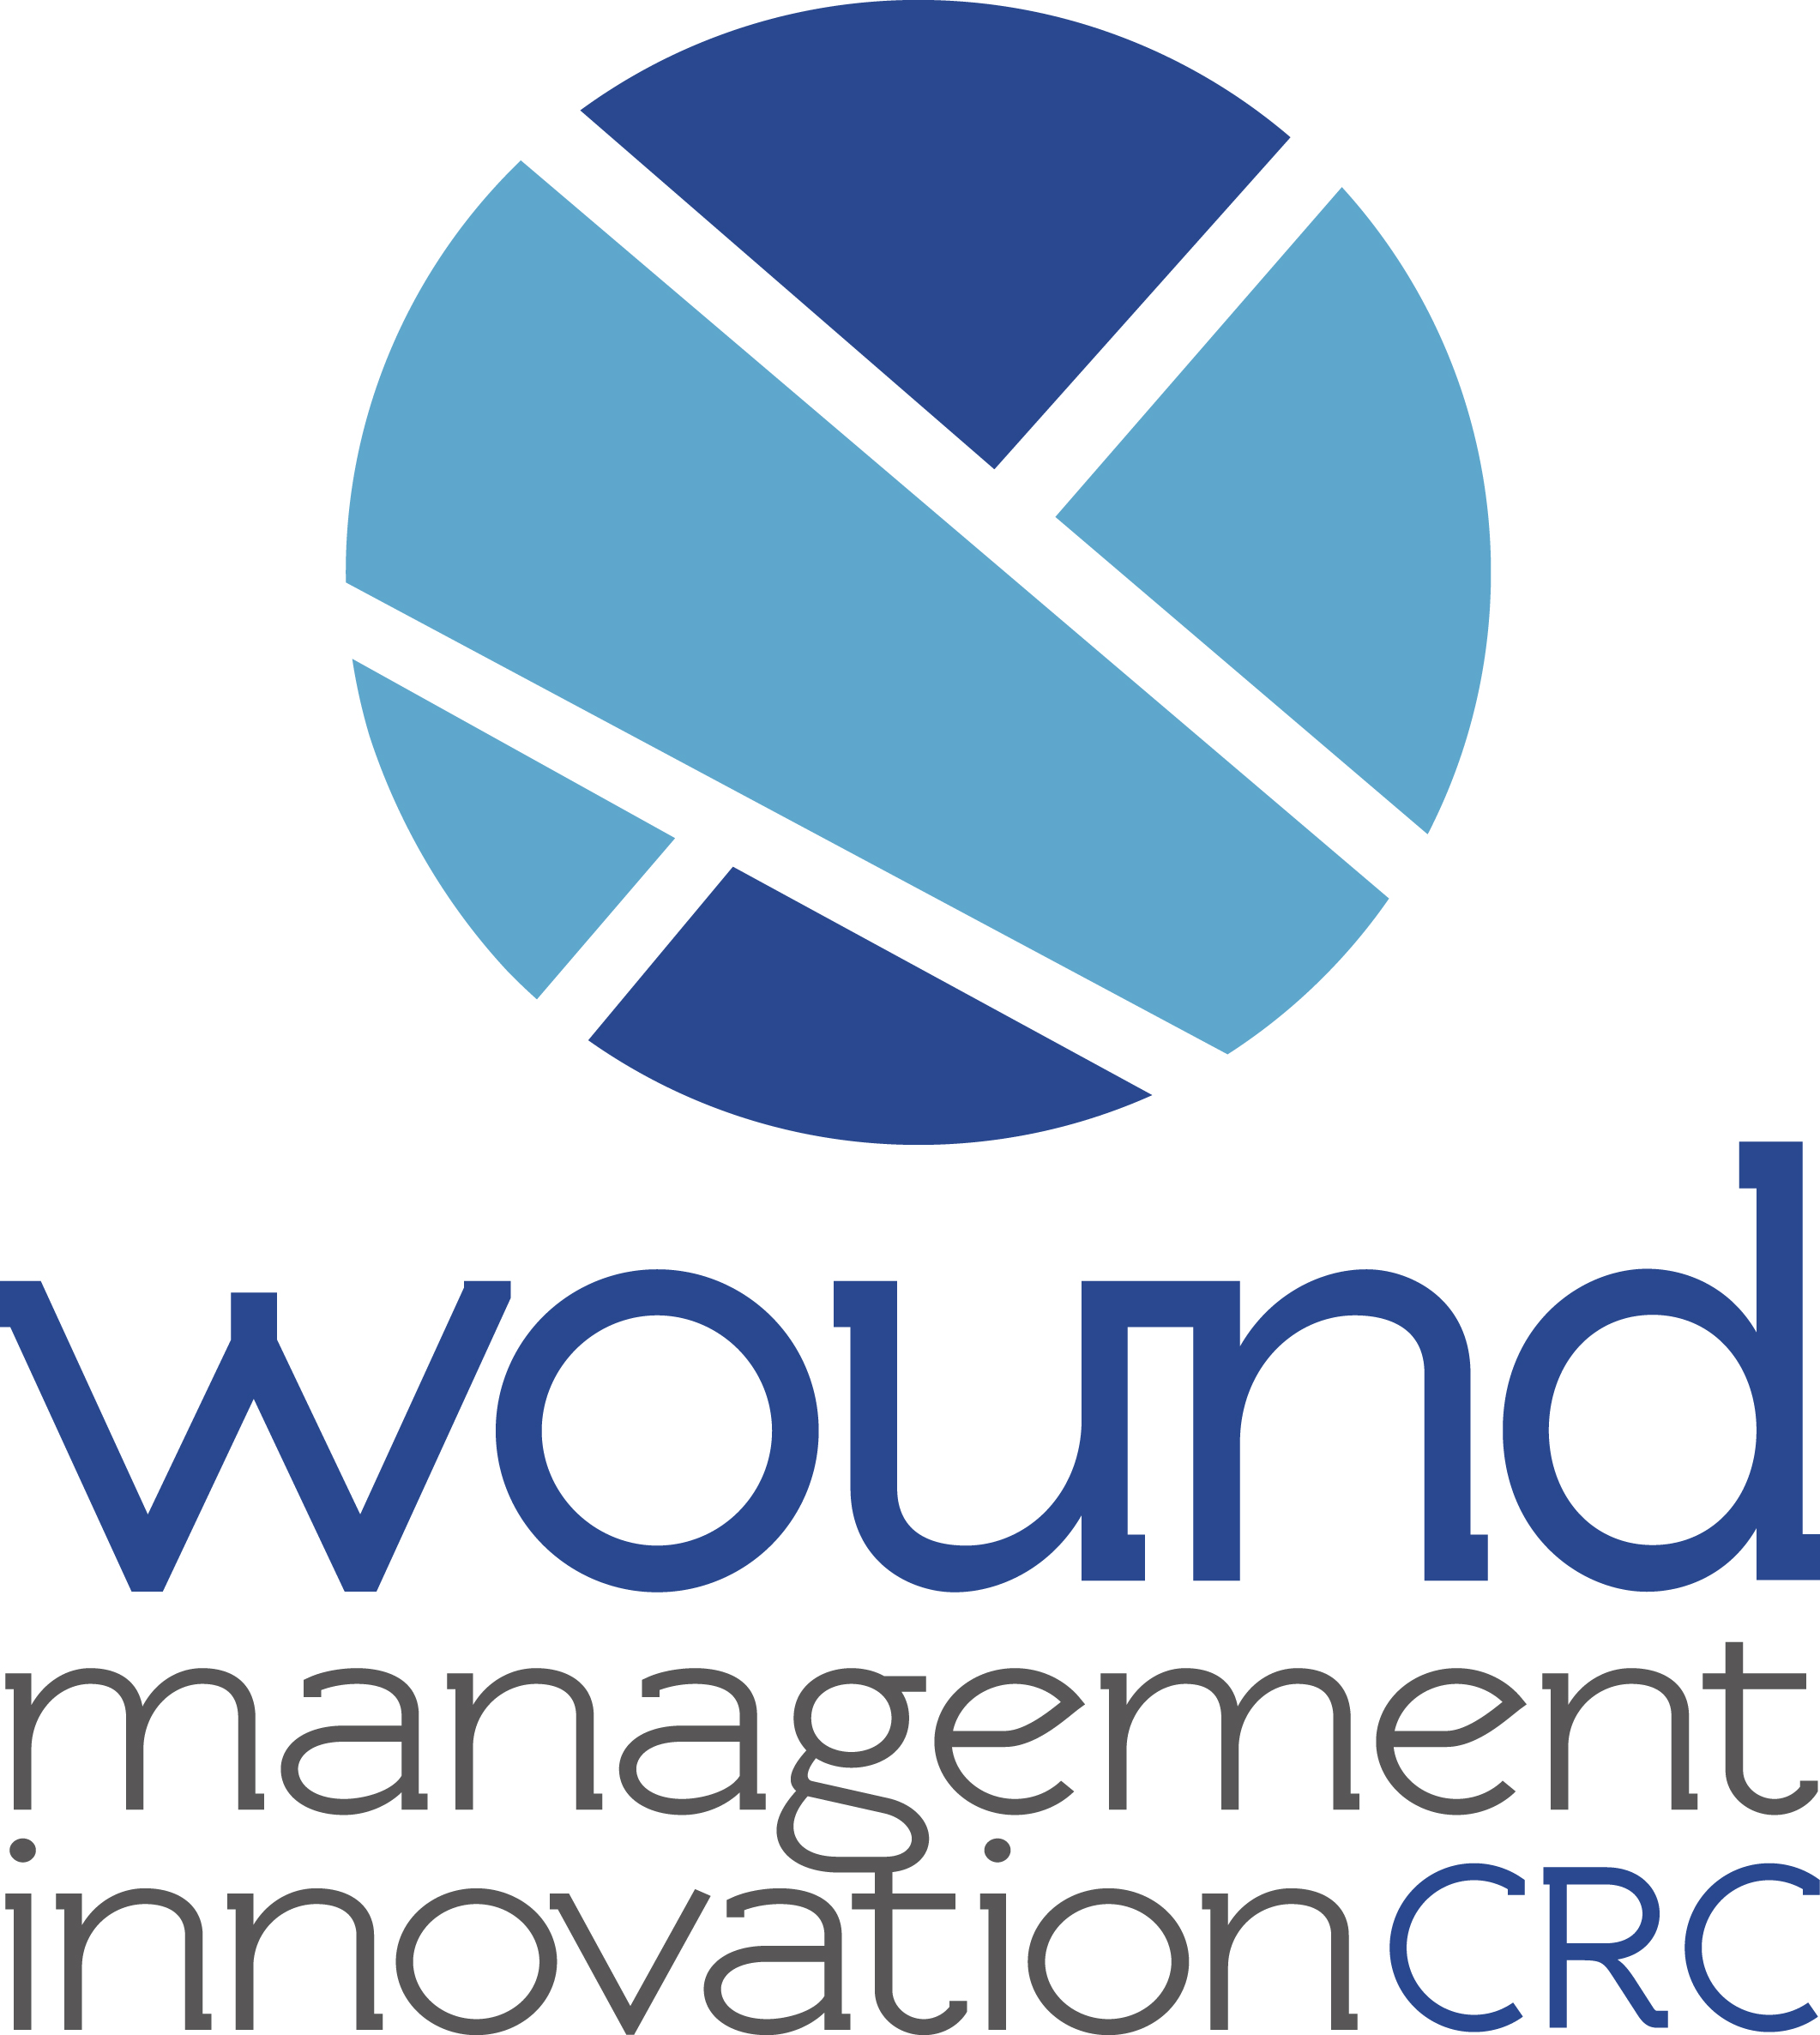 Wound Management Innovation CRC logo